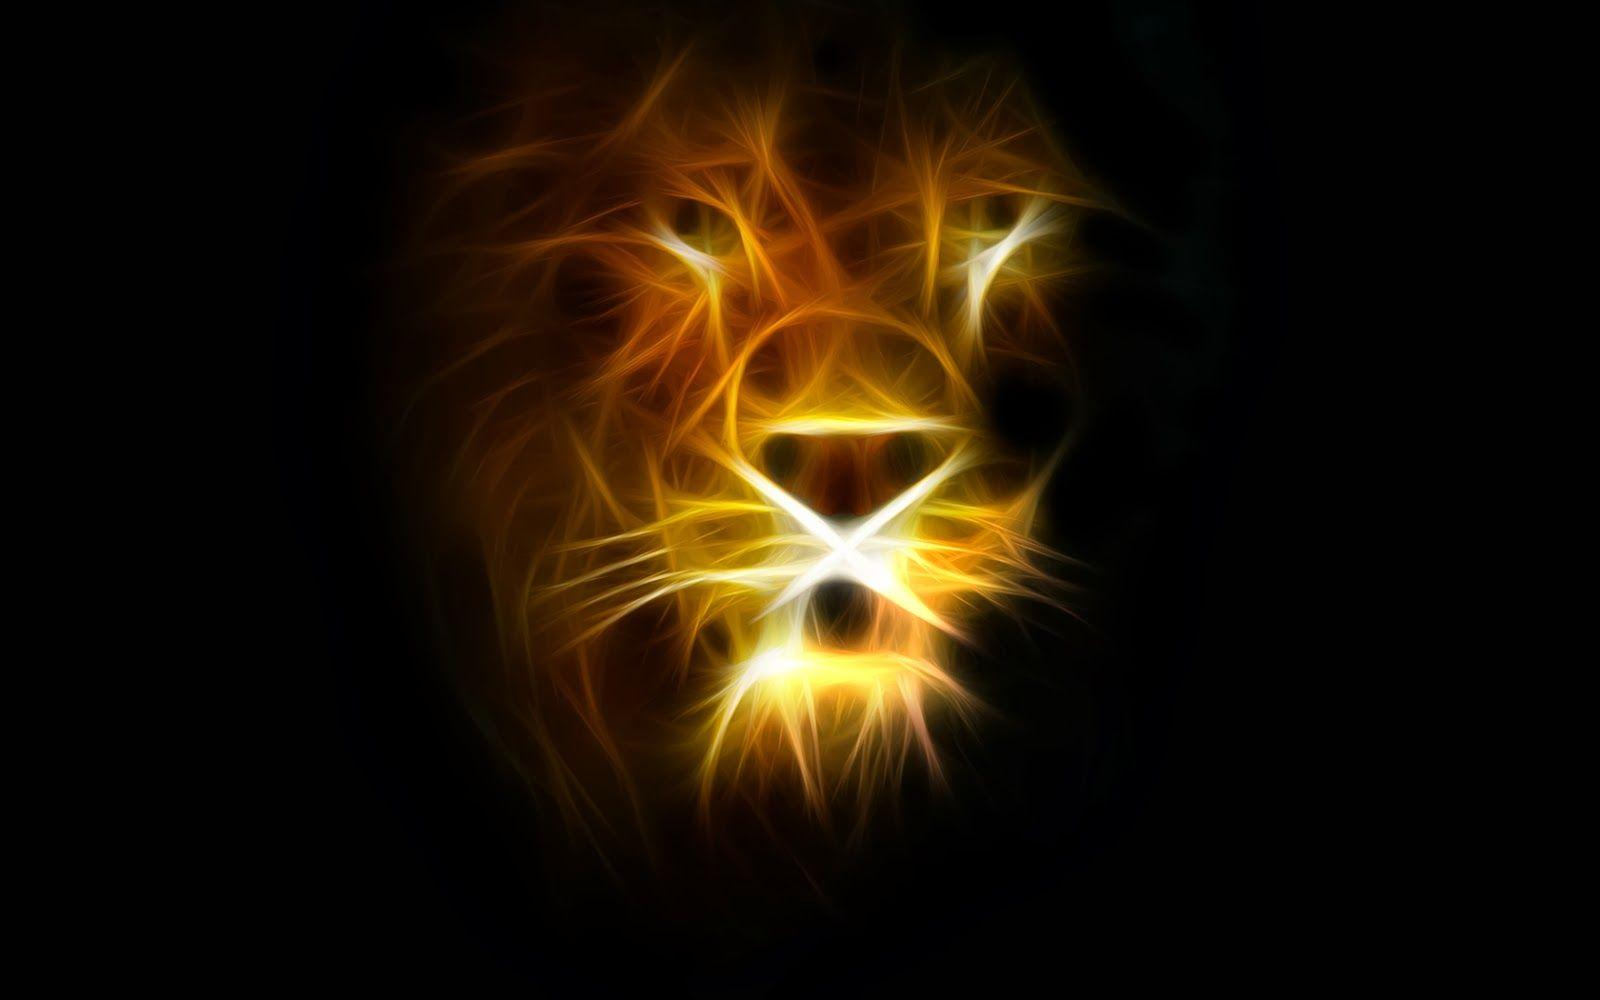 Abstract Lion Wallpapers - Wallpaper Cave